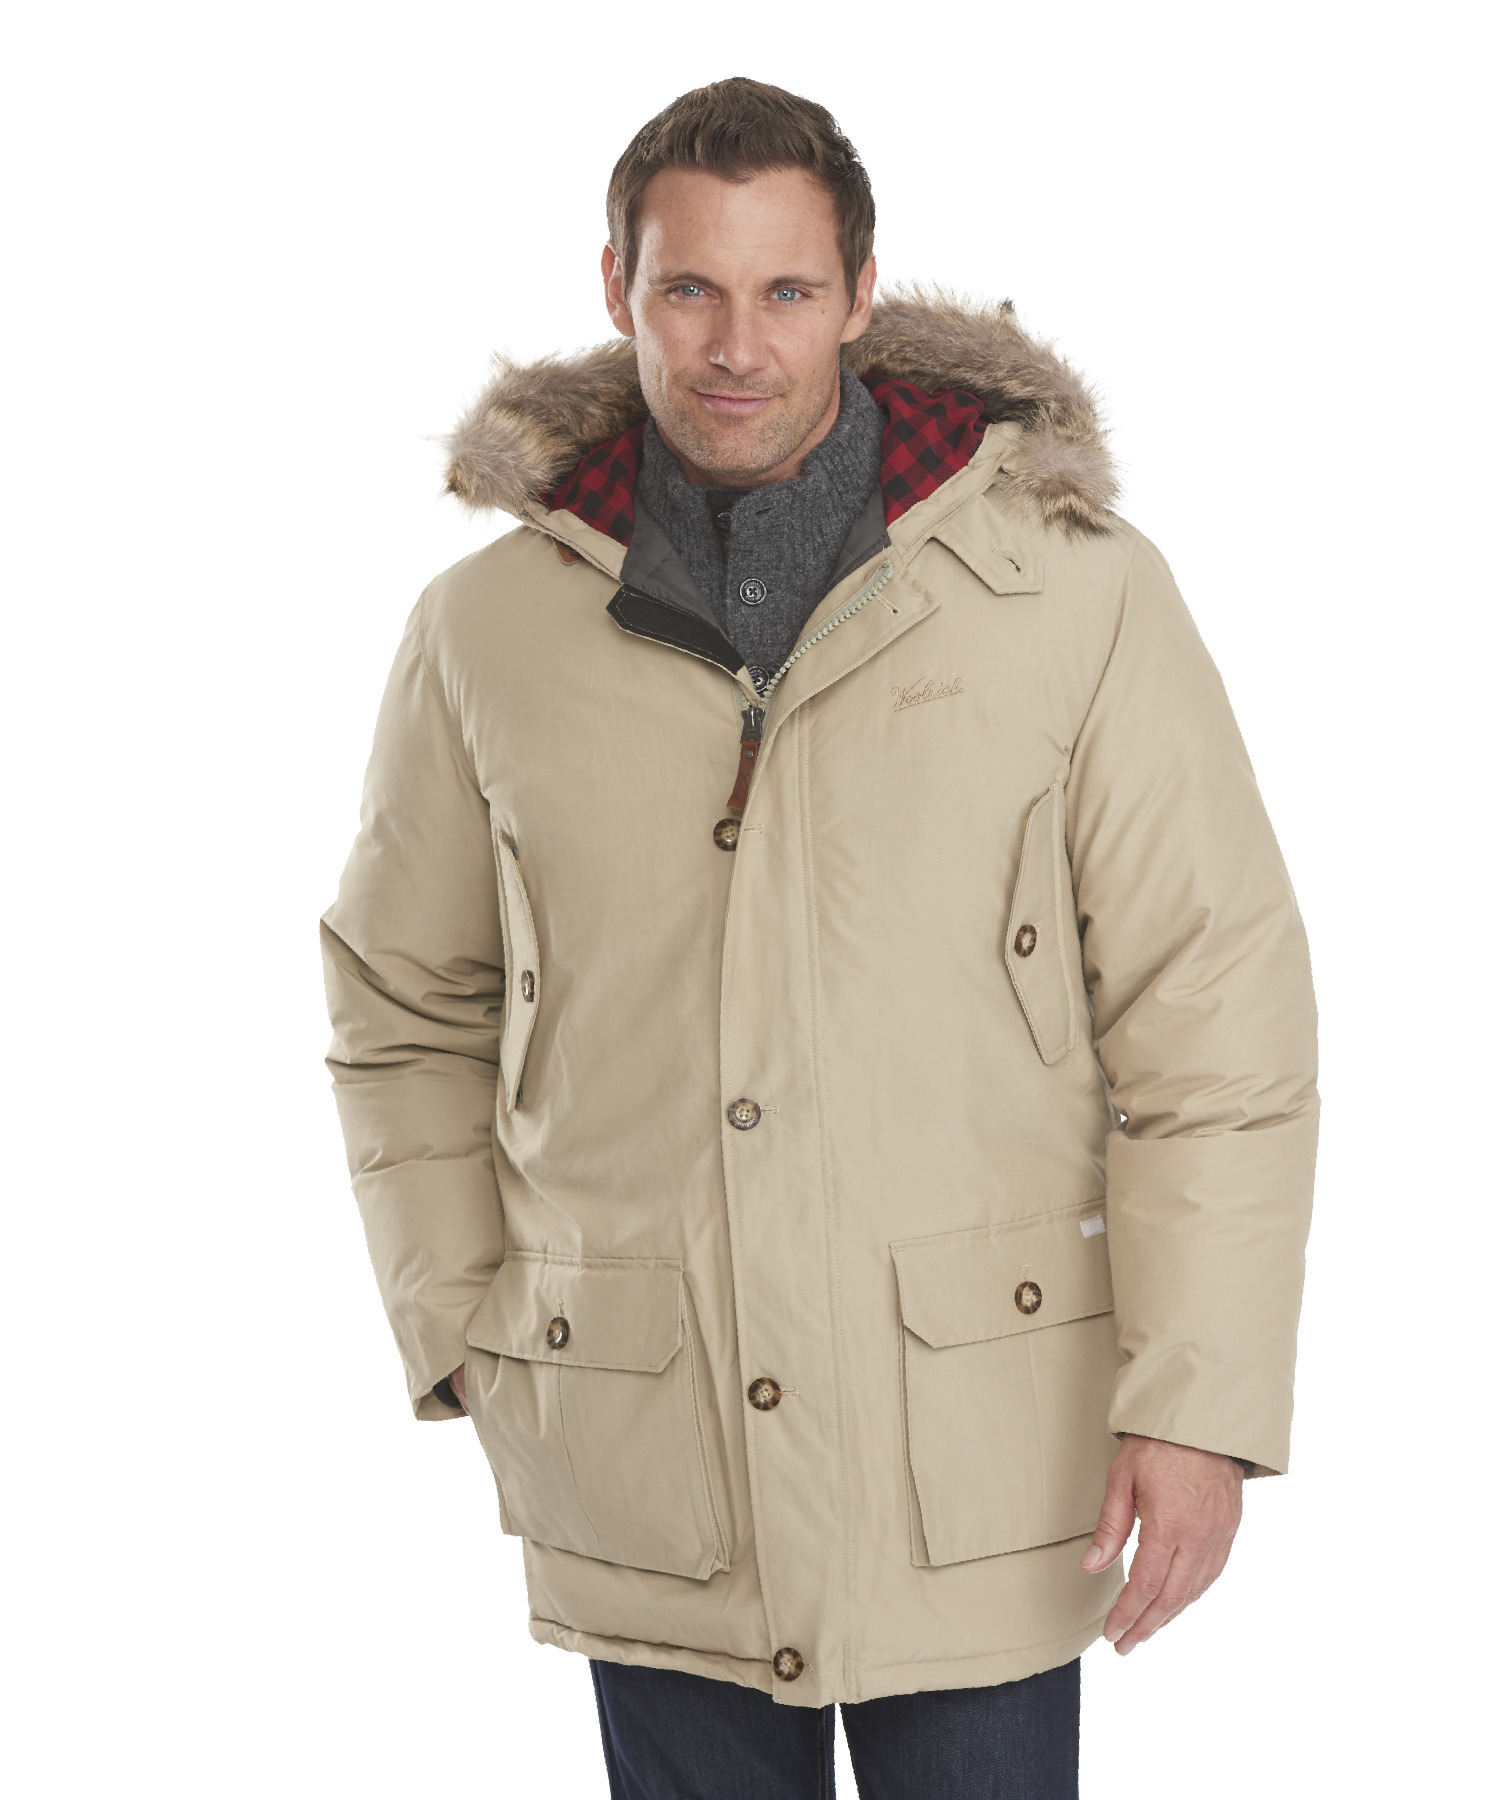 woolrich parka herren sale parka jackets men jackets woolrich parka herren woolrich arctic. Black Bedroom Furniture Sets. Home Design Ideas